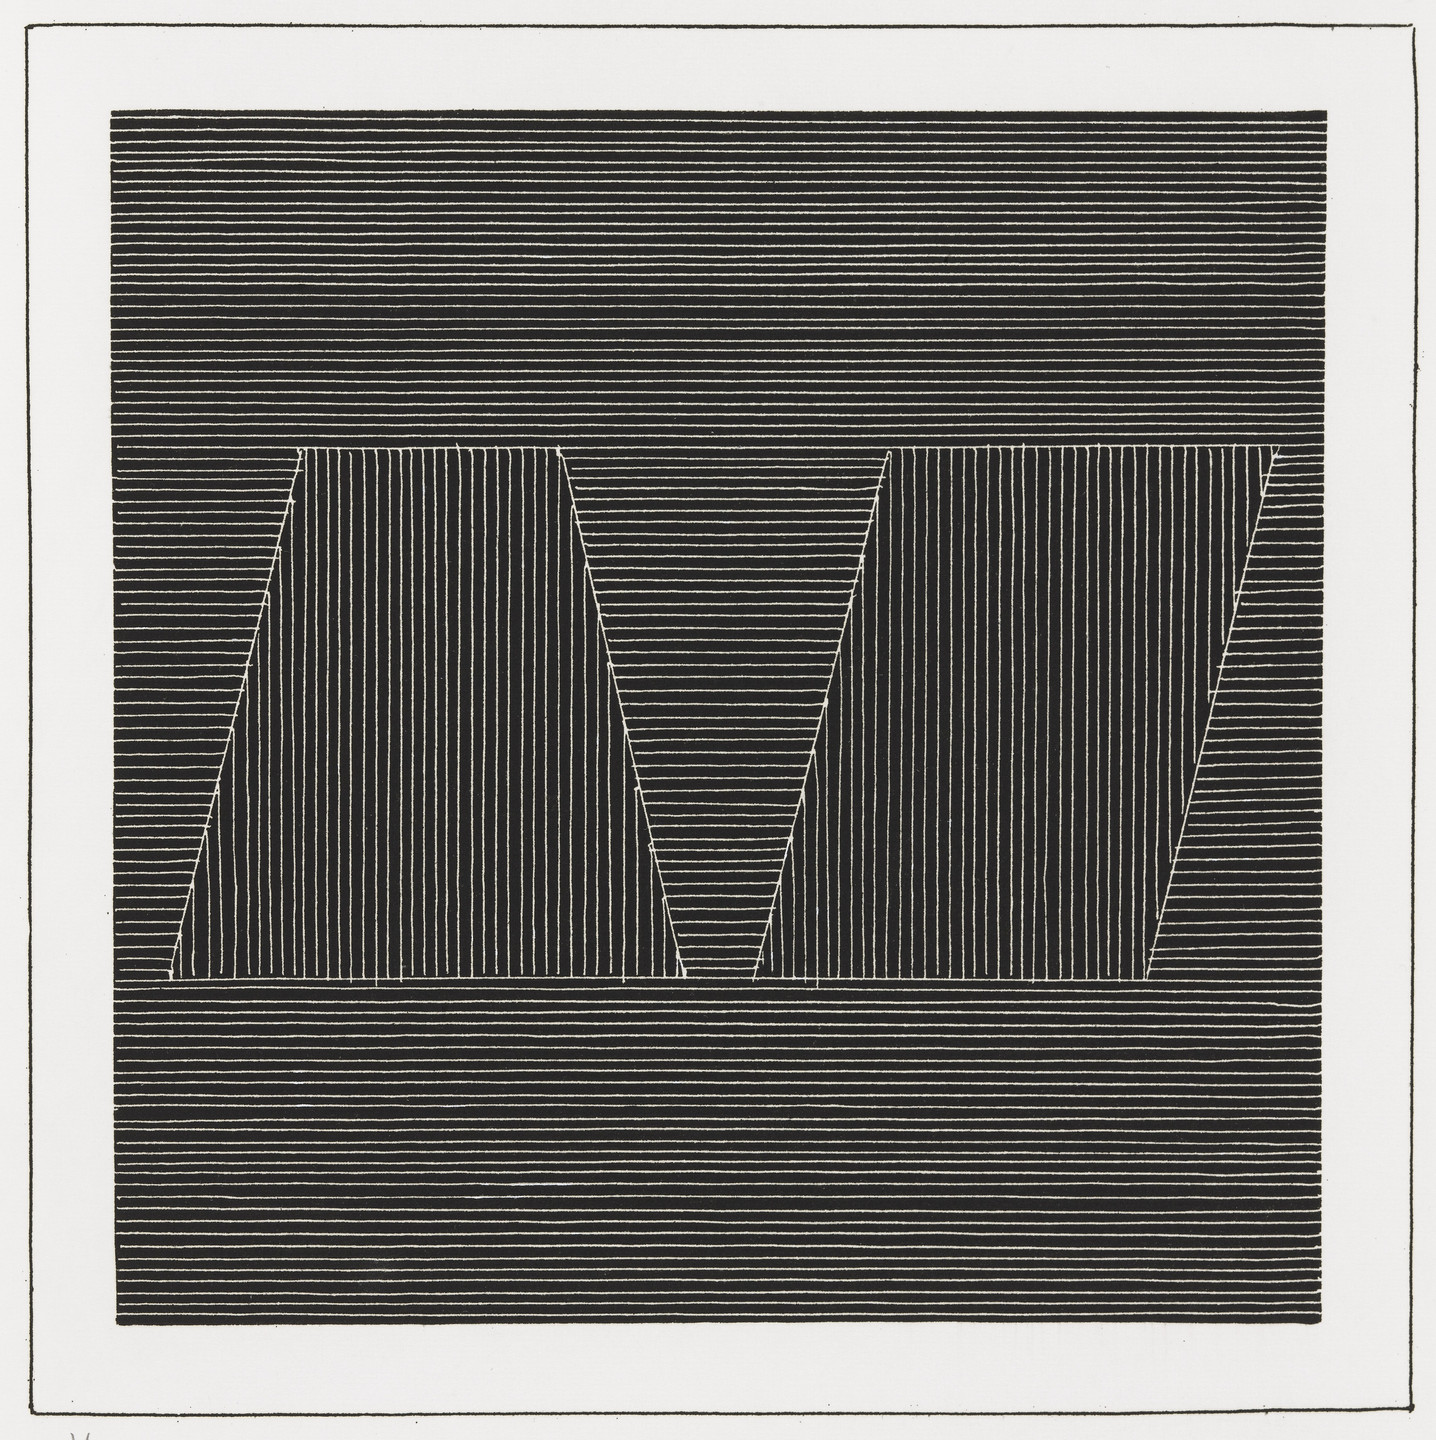 Sol LeWitt. Plate (folio 22) from Six Geometric Figures and All Their Combinations, Volume I. 1980